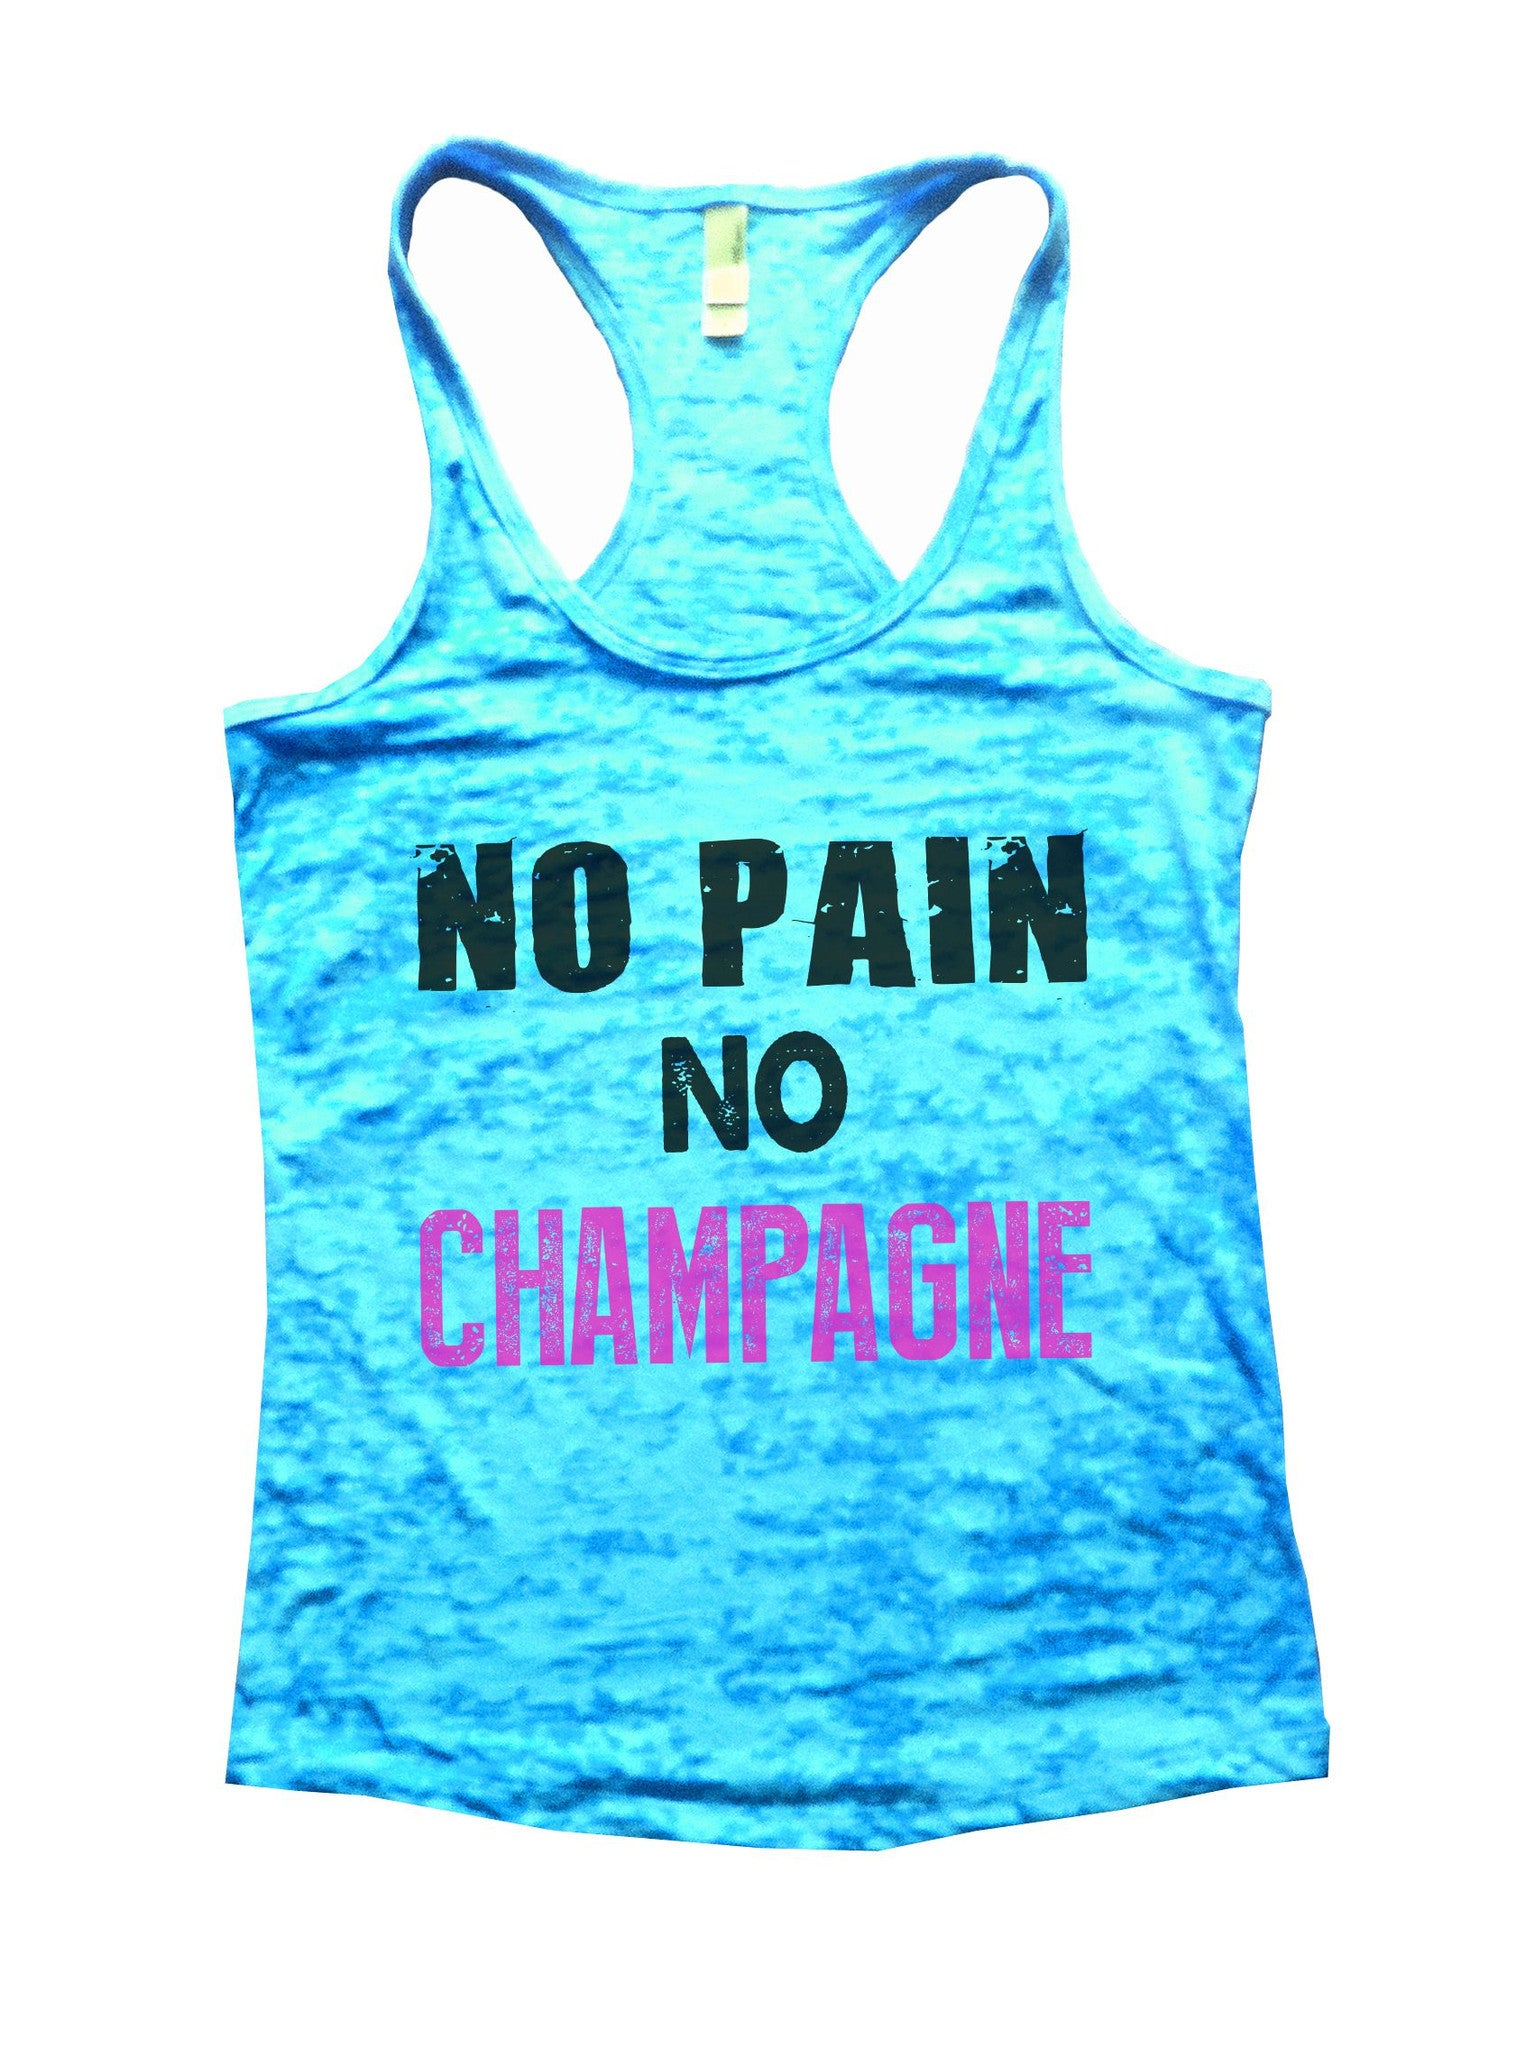 No Pain No Champagne Burnout Tank Top By BurnoutTankTops.com - 683 - Funny Shirts Tank Tops Burnouts and Triblends  - 1